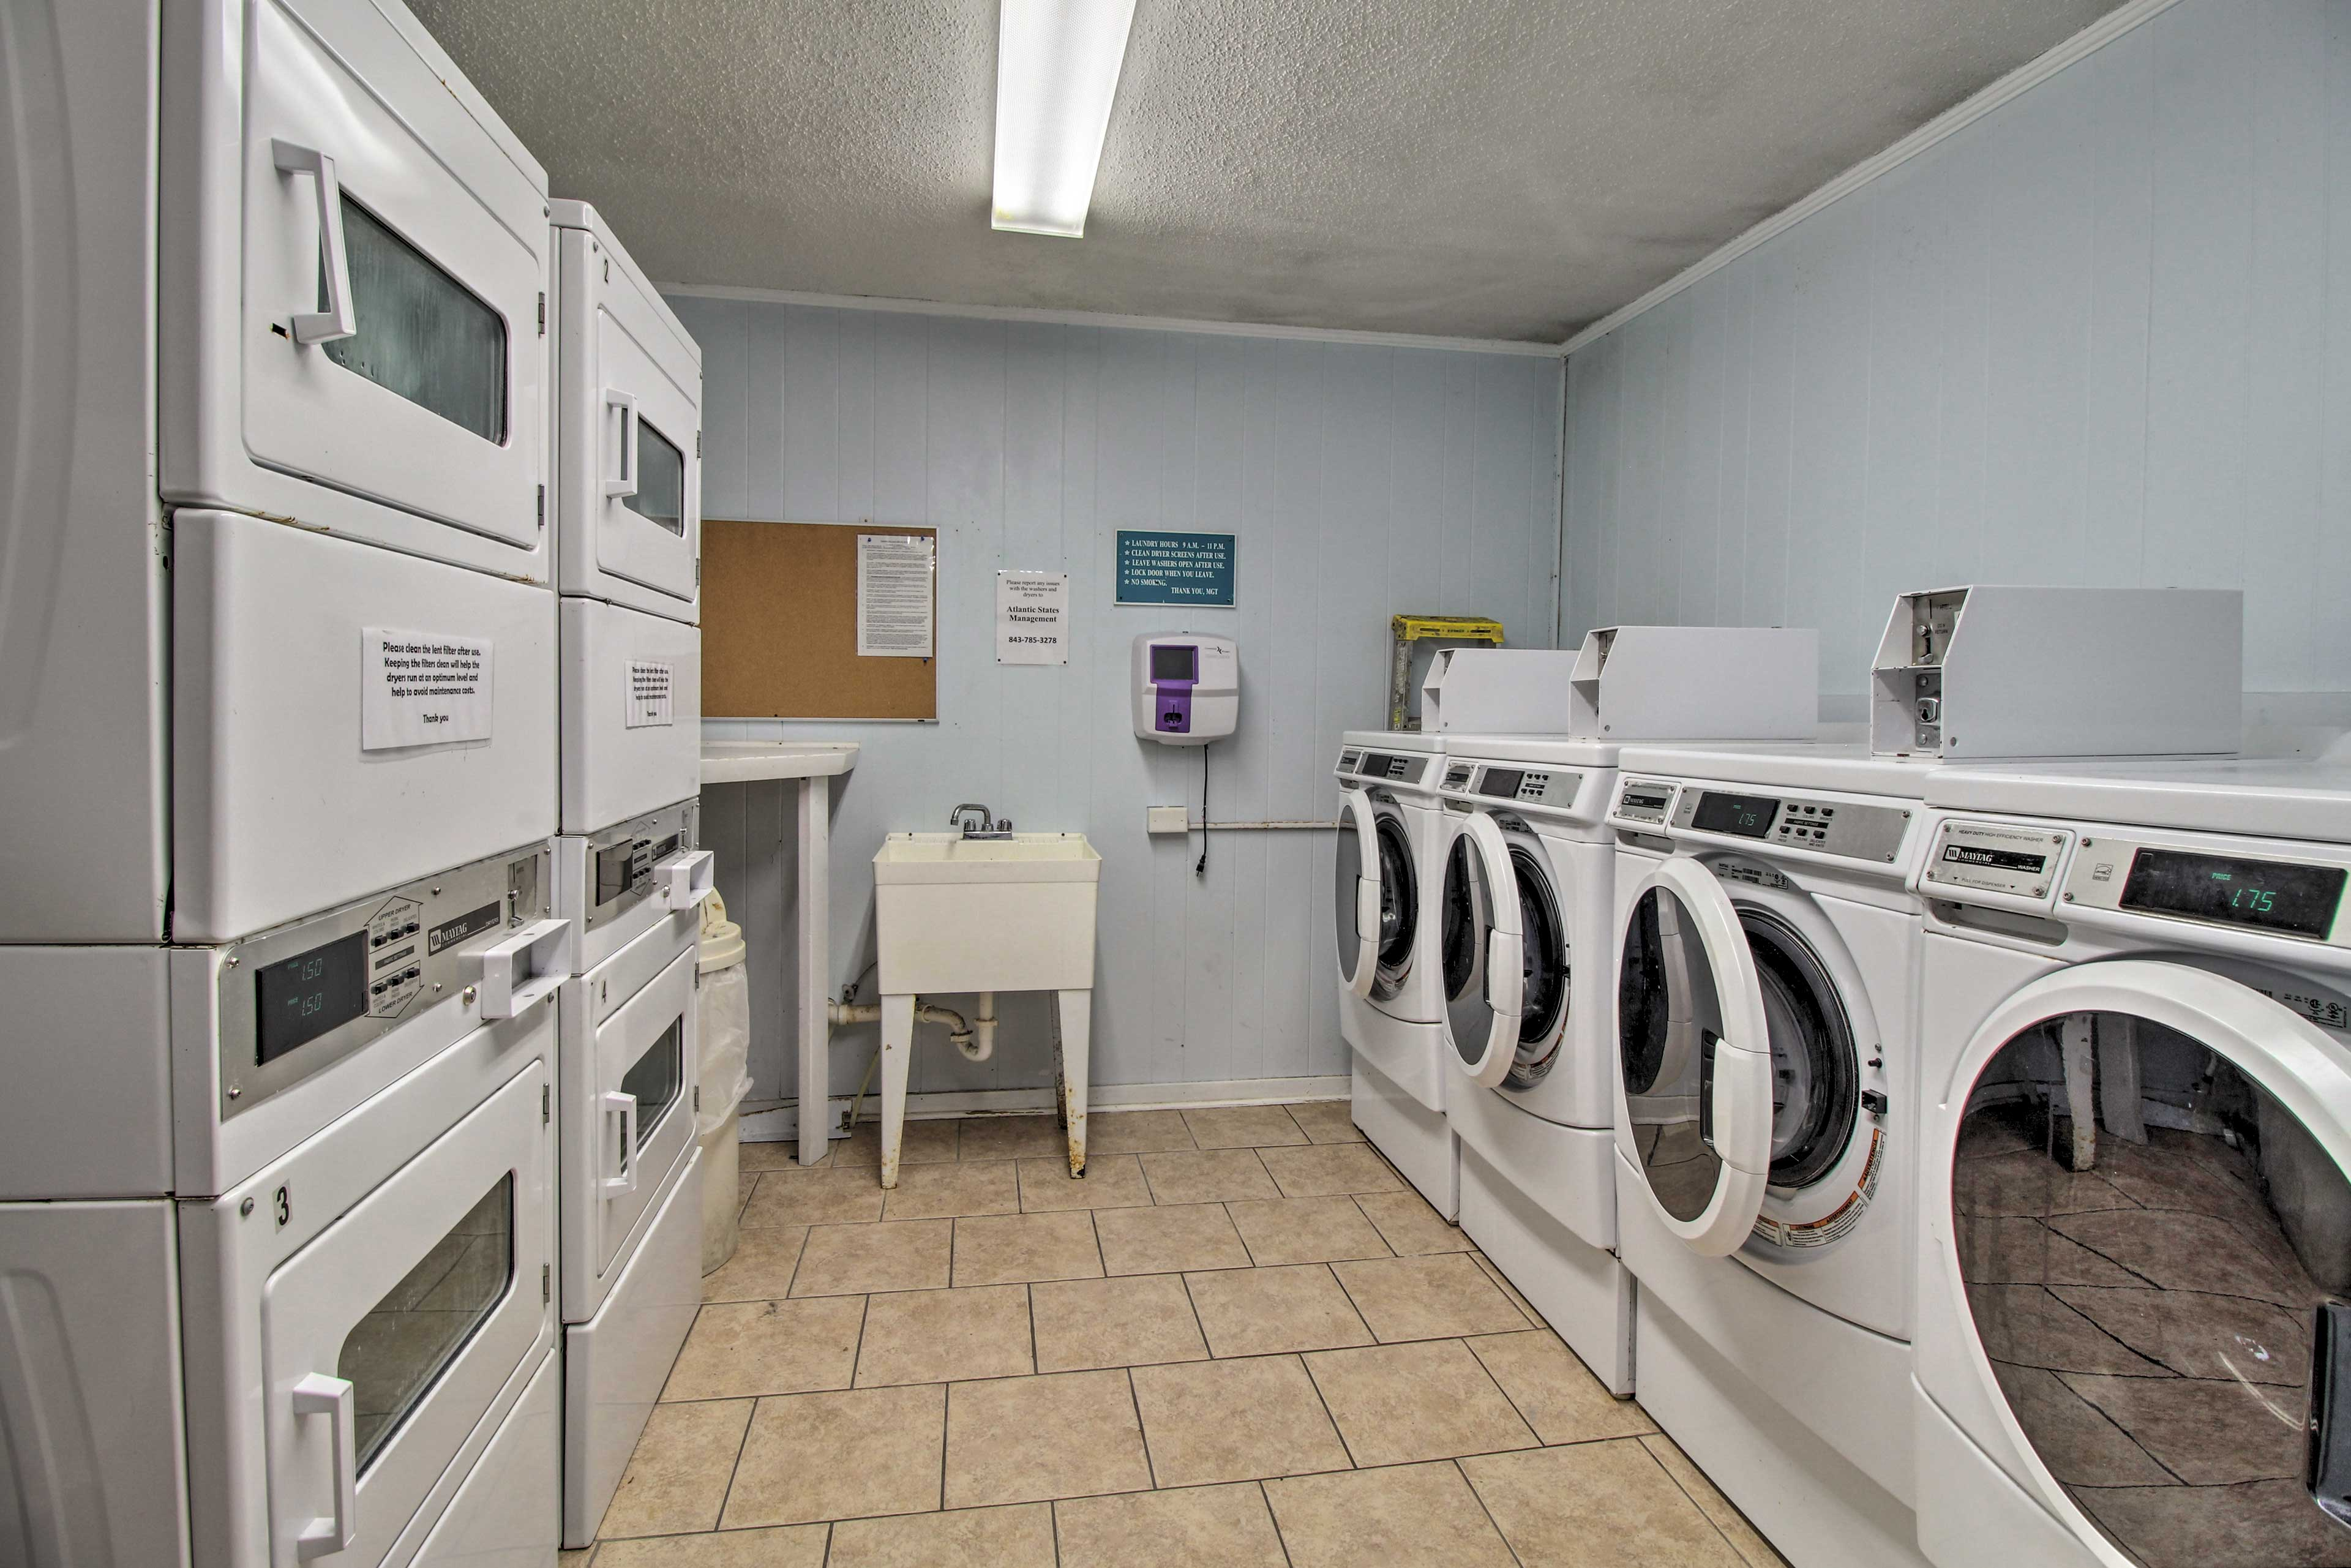 Community Laundry Room   Coin-Operated Laundry Machines